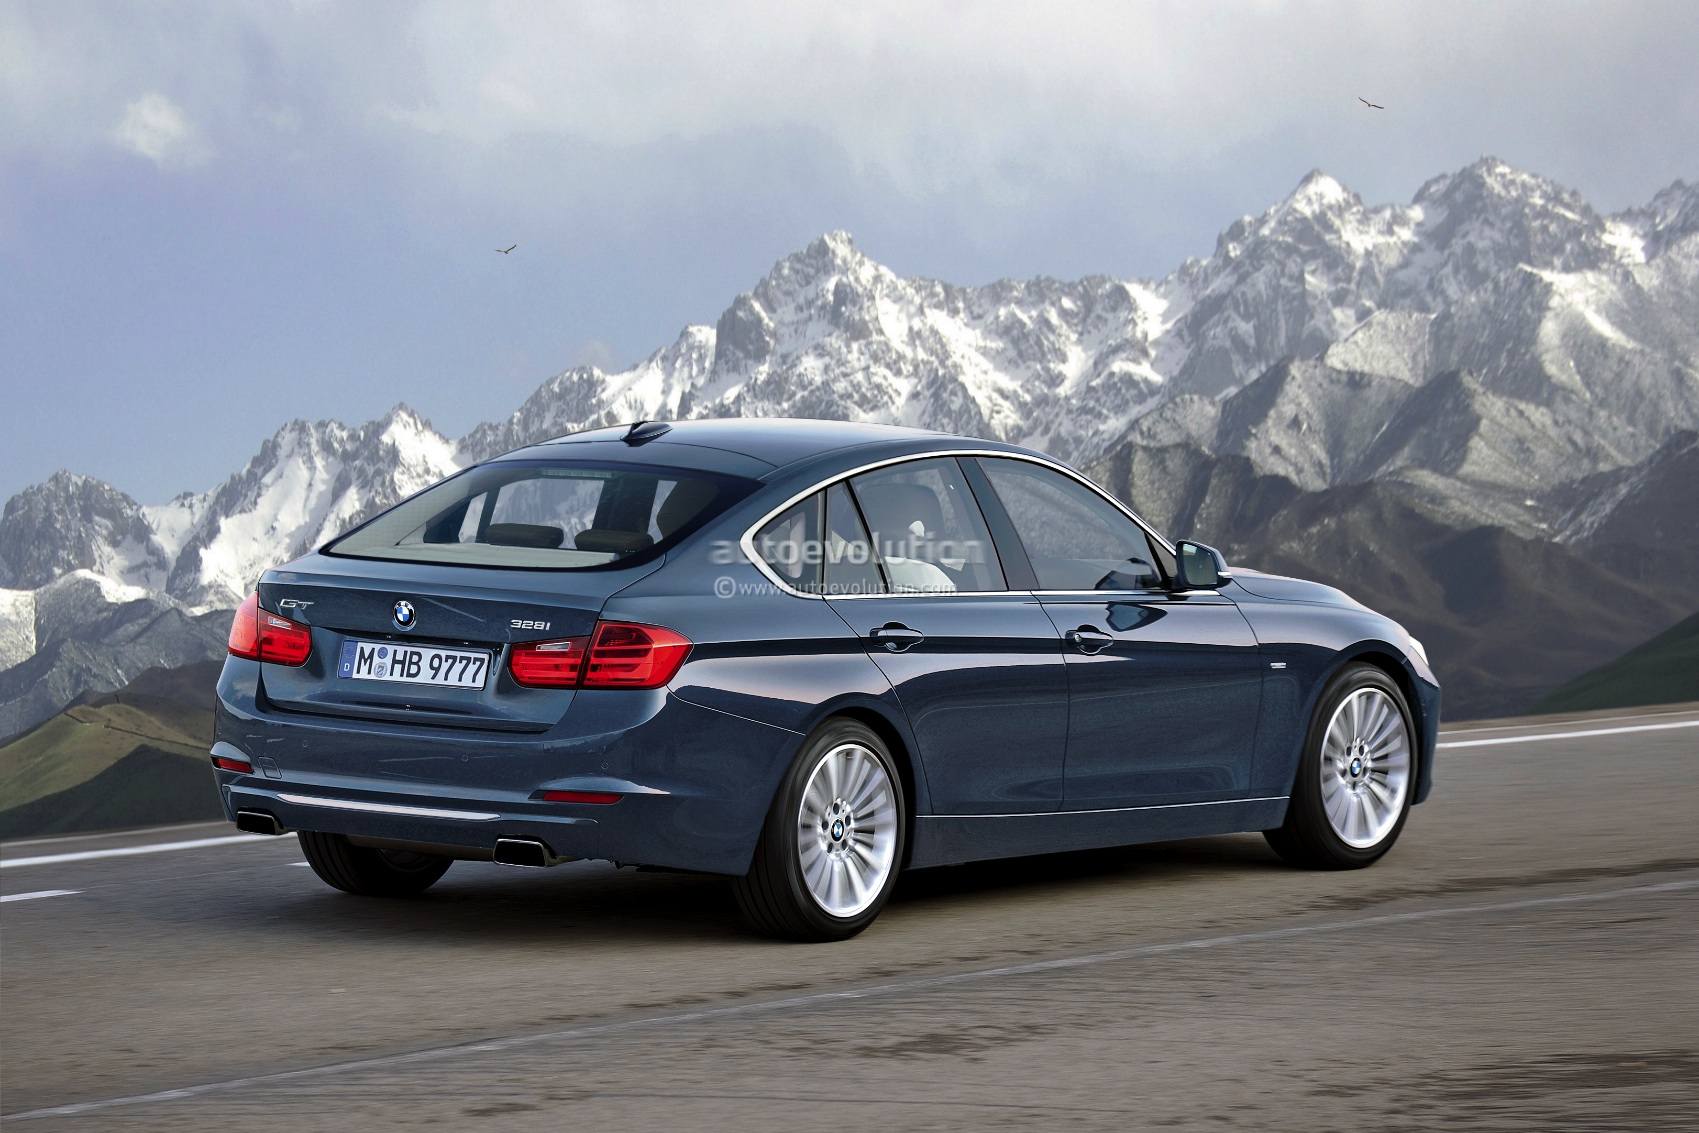 2013 bmw f34 3 series gran turismo rendering autoevolution. Black Bedroom Furniture Sets. Home Design Ideas